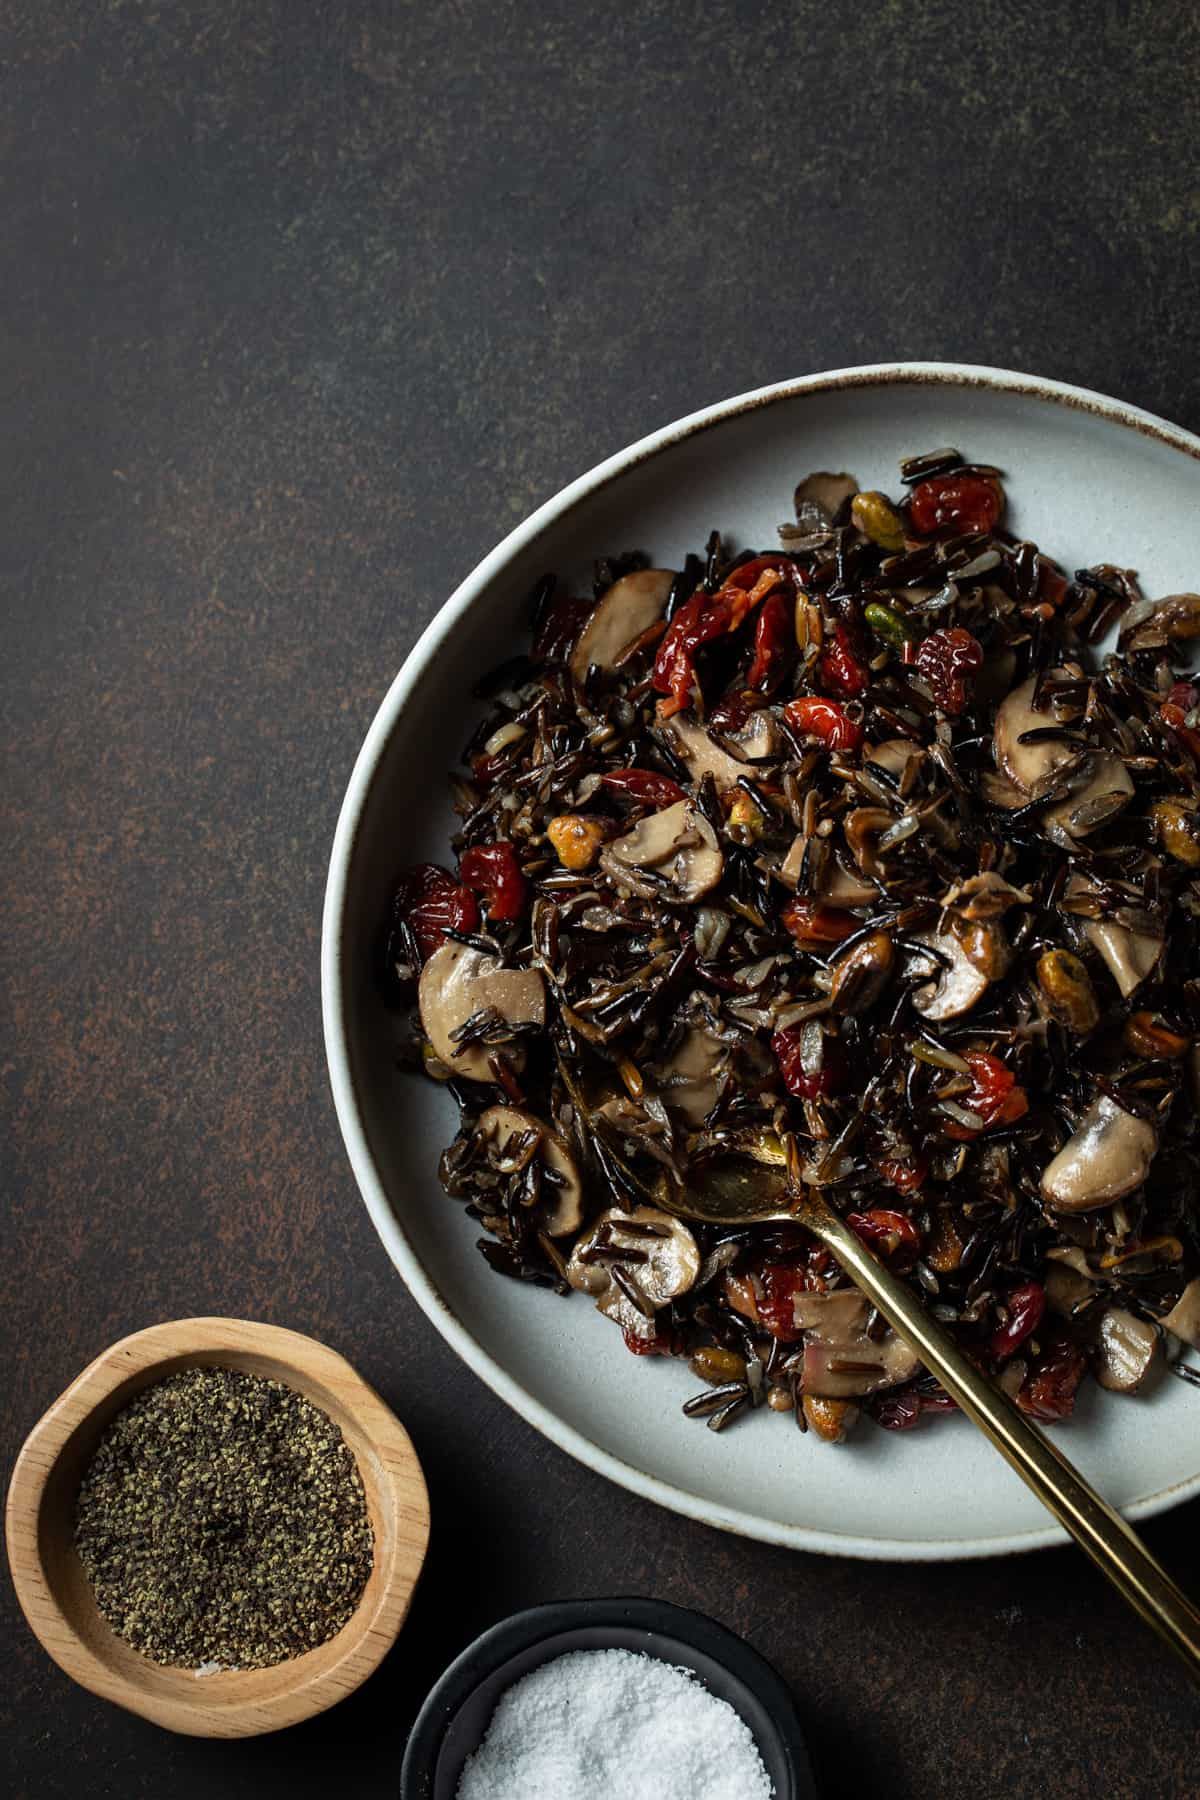 Gray bowl filled with cooked wild rice, pistachios, mushrooms & cherries next to two small bowls of salt & pepper.